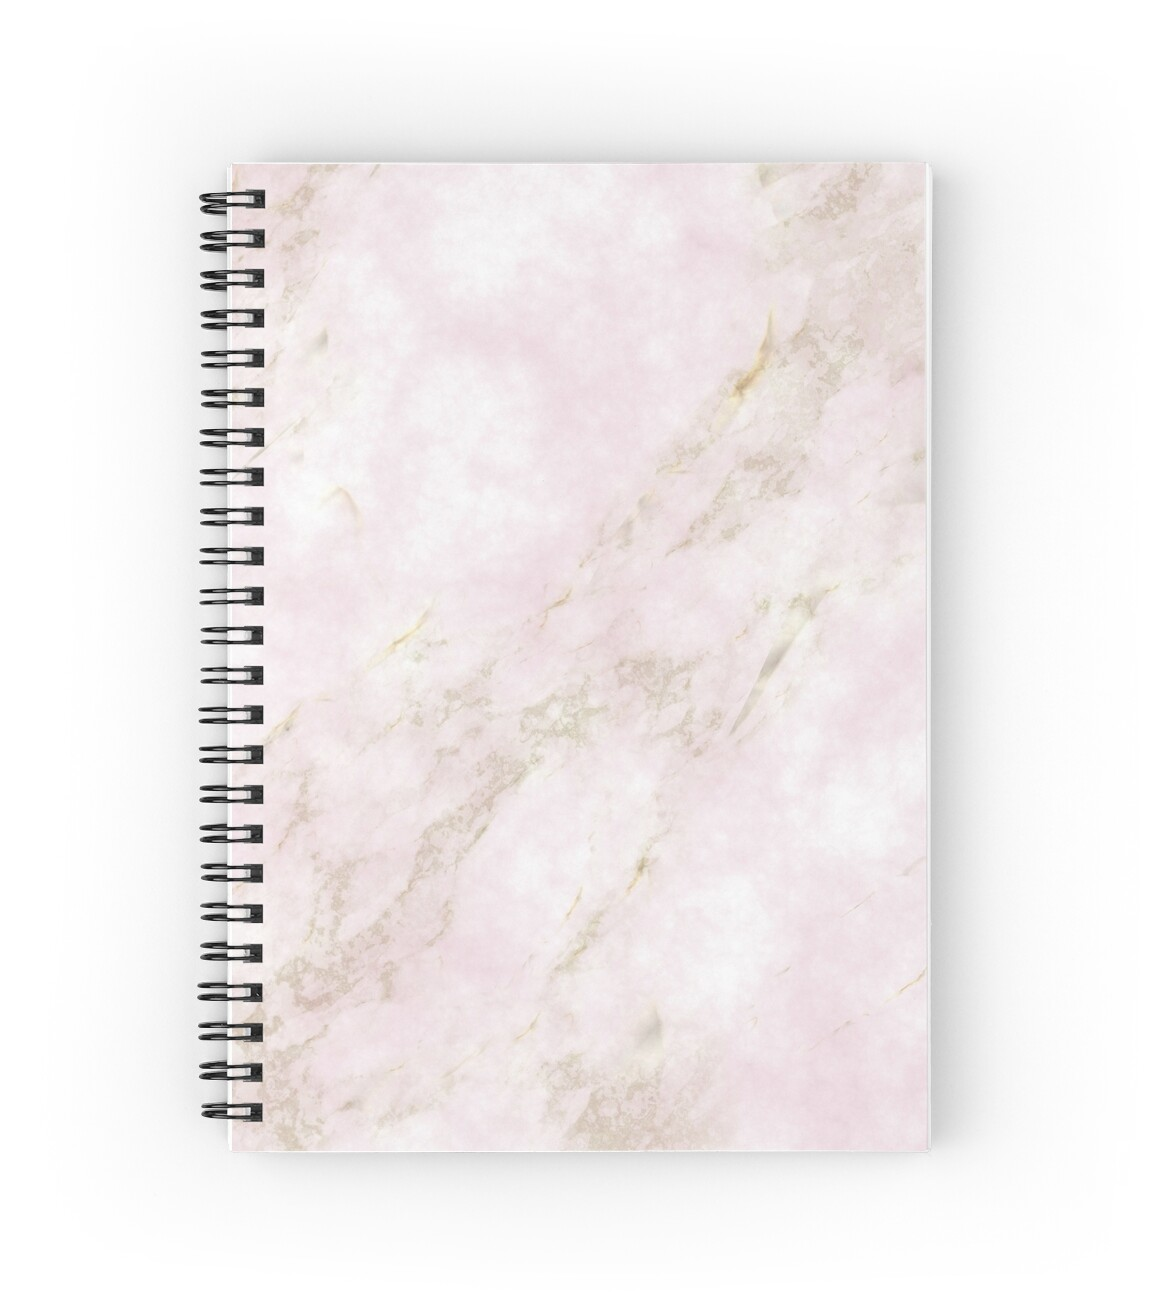 u0026quot rose gold marble u0026quot  spiral notebooks by danrazvan